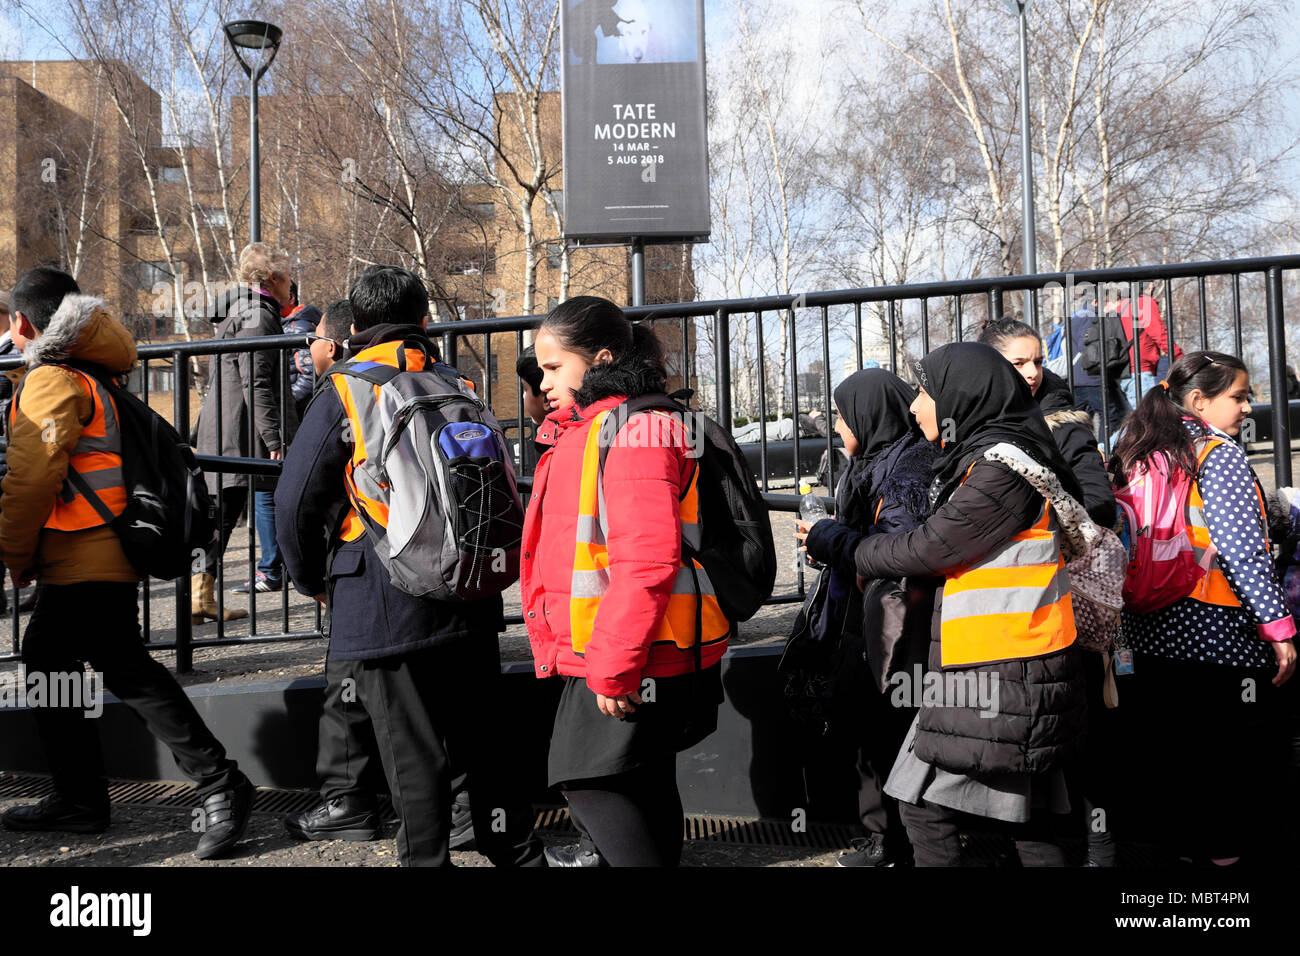 Group of British primary schoolchildren kids visiting the Tate Modern art gallery at Bankside in South London, England UK  KATHY DEWITT - Stock Image